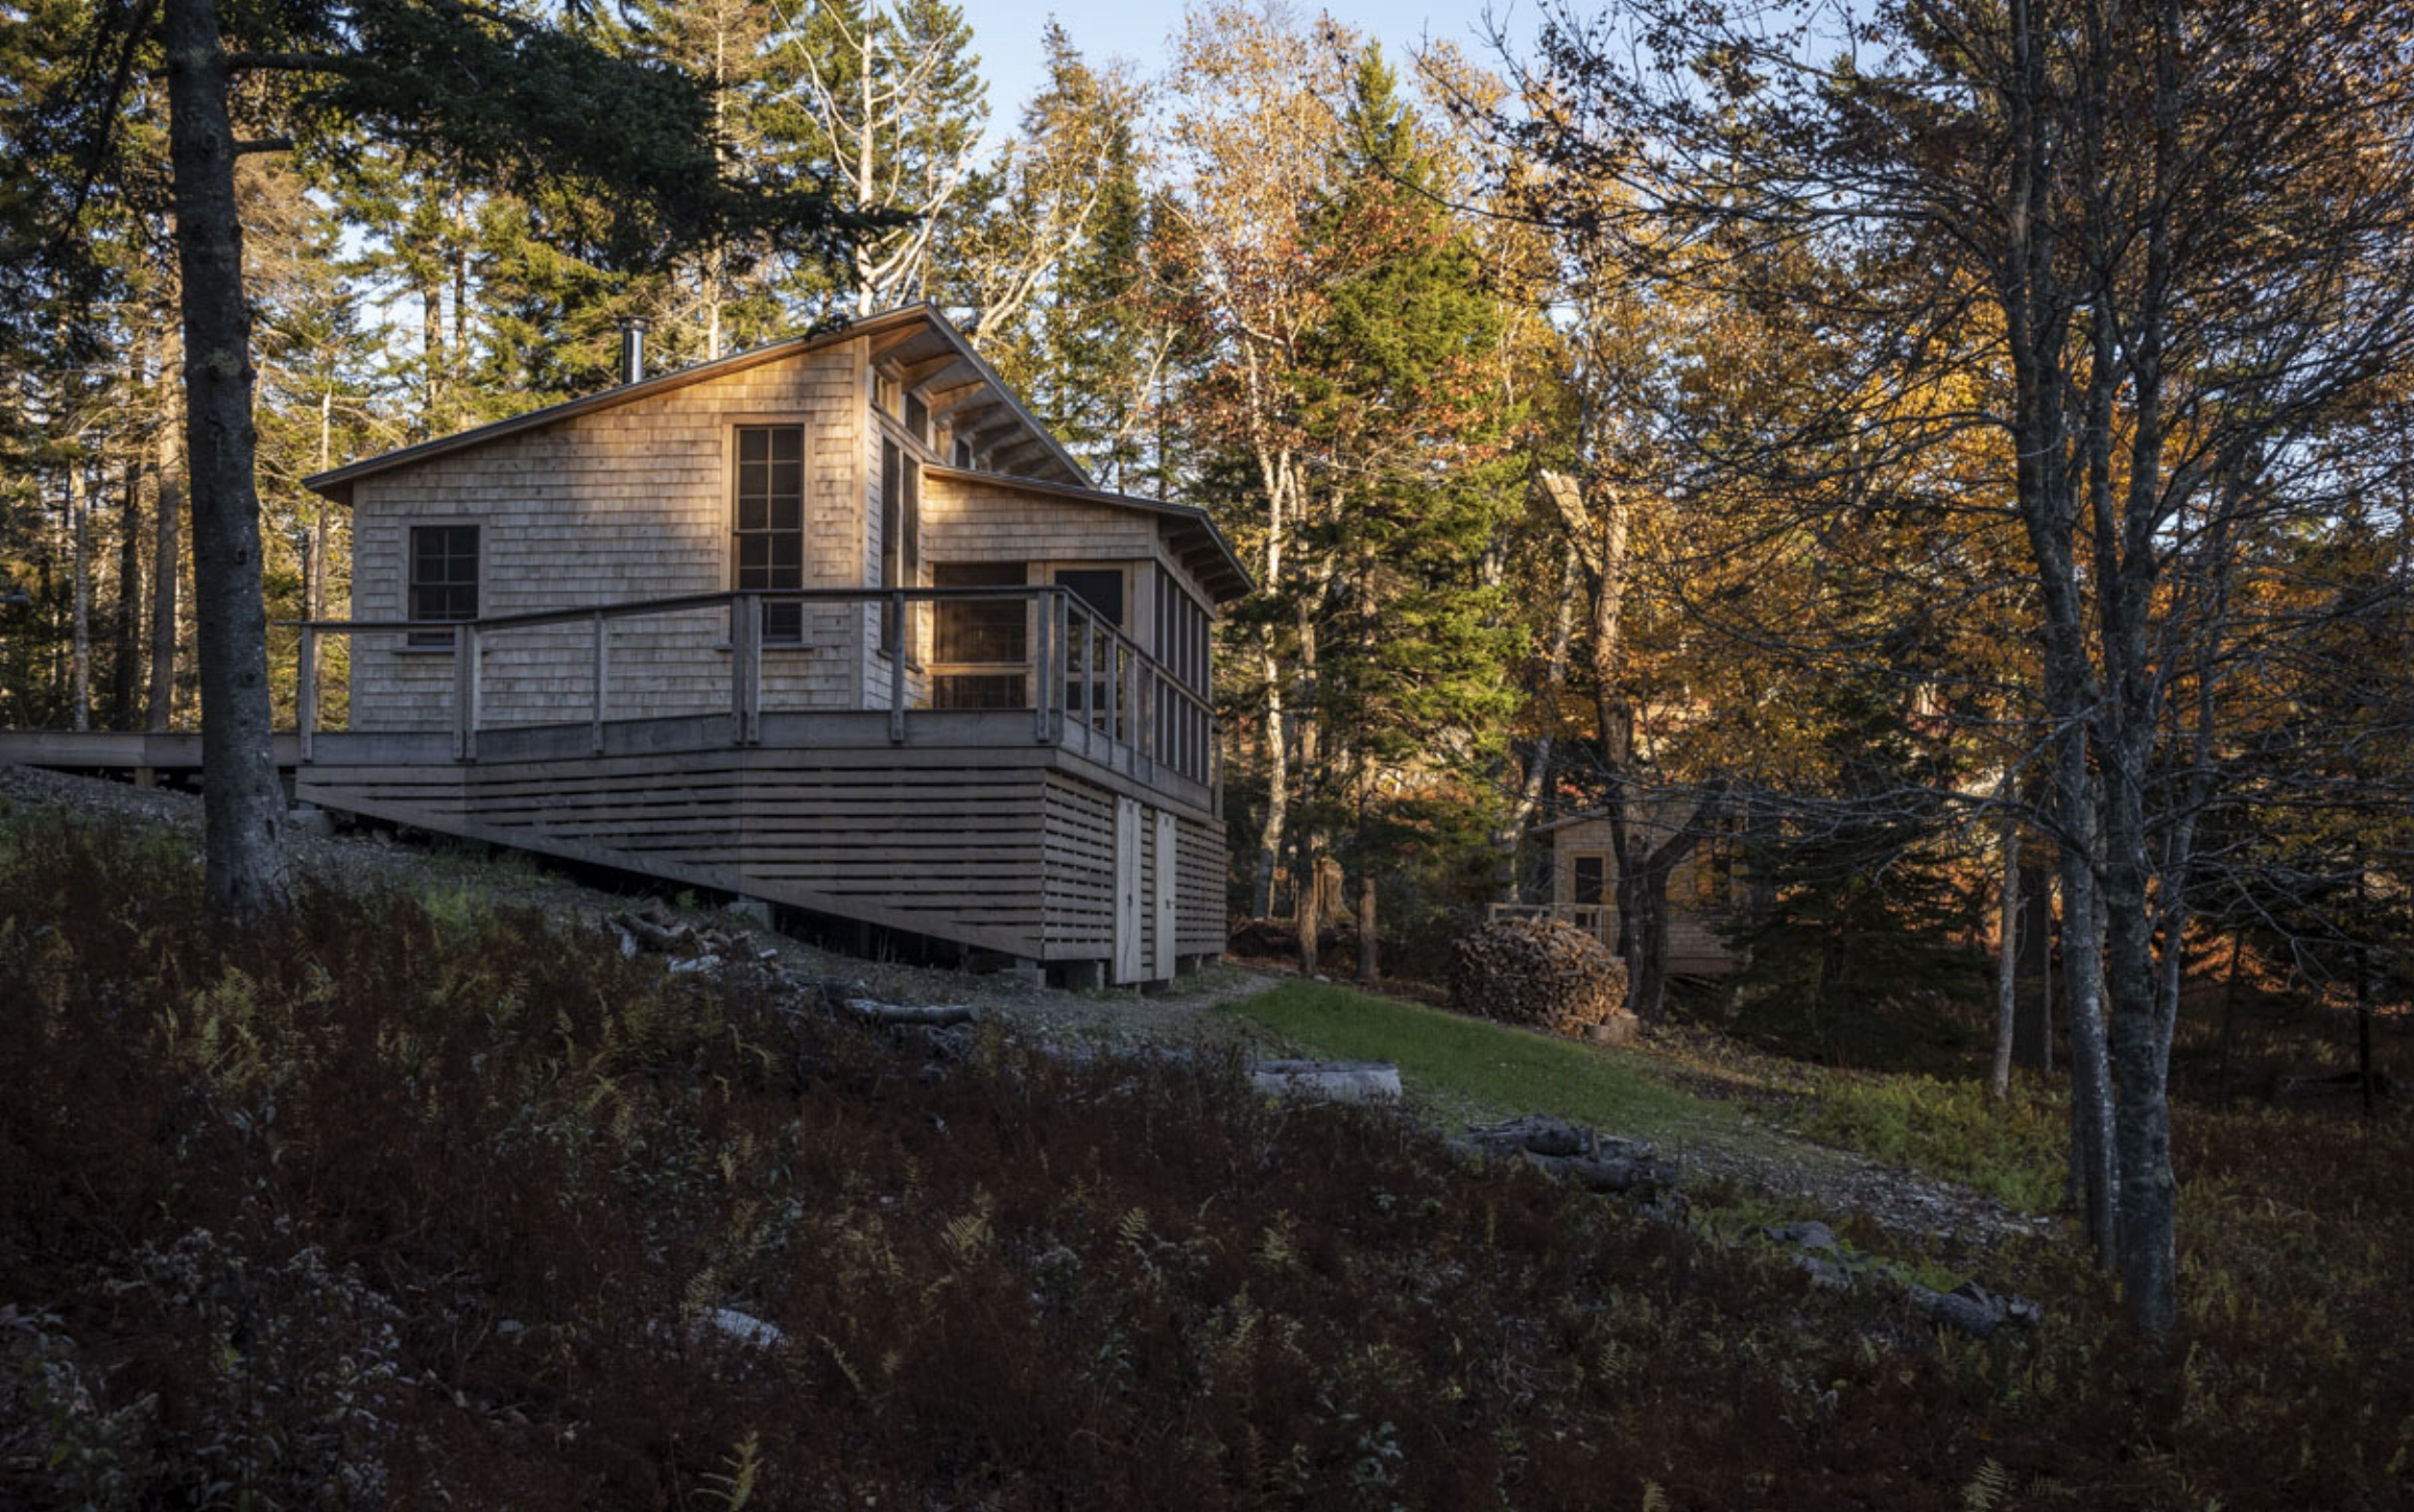 phopro-ext-hill_cabin_w_facade-150ppi8x5.jpg